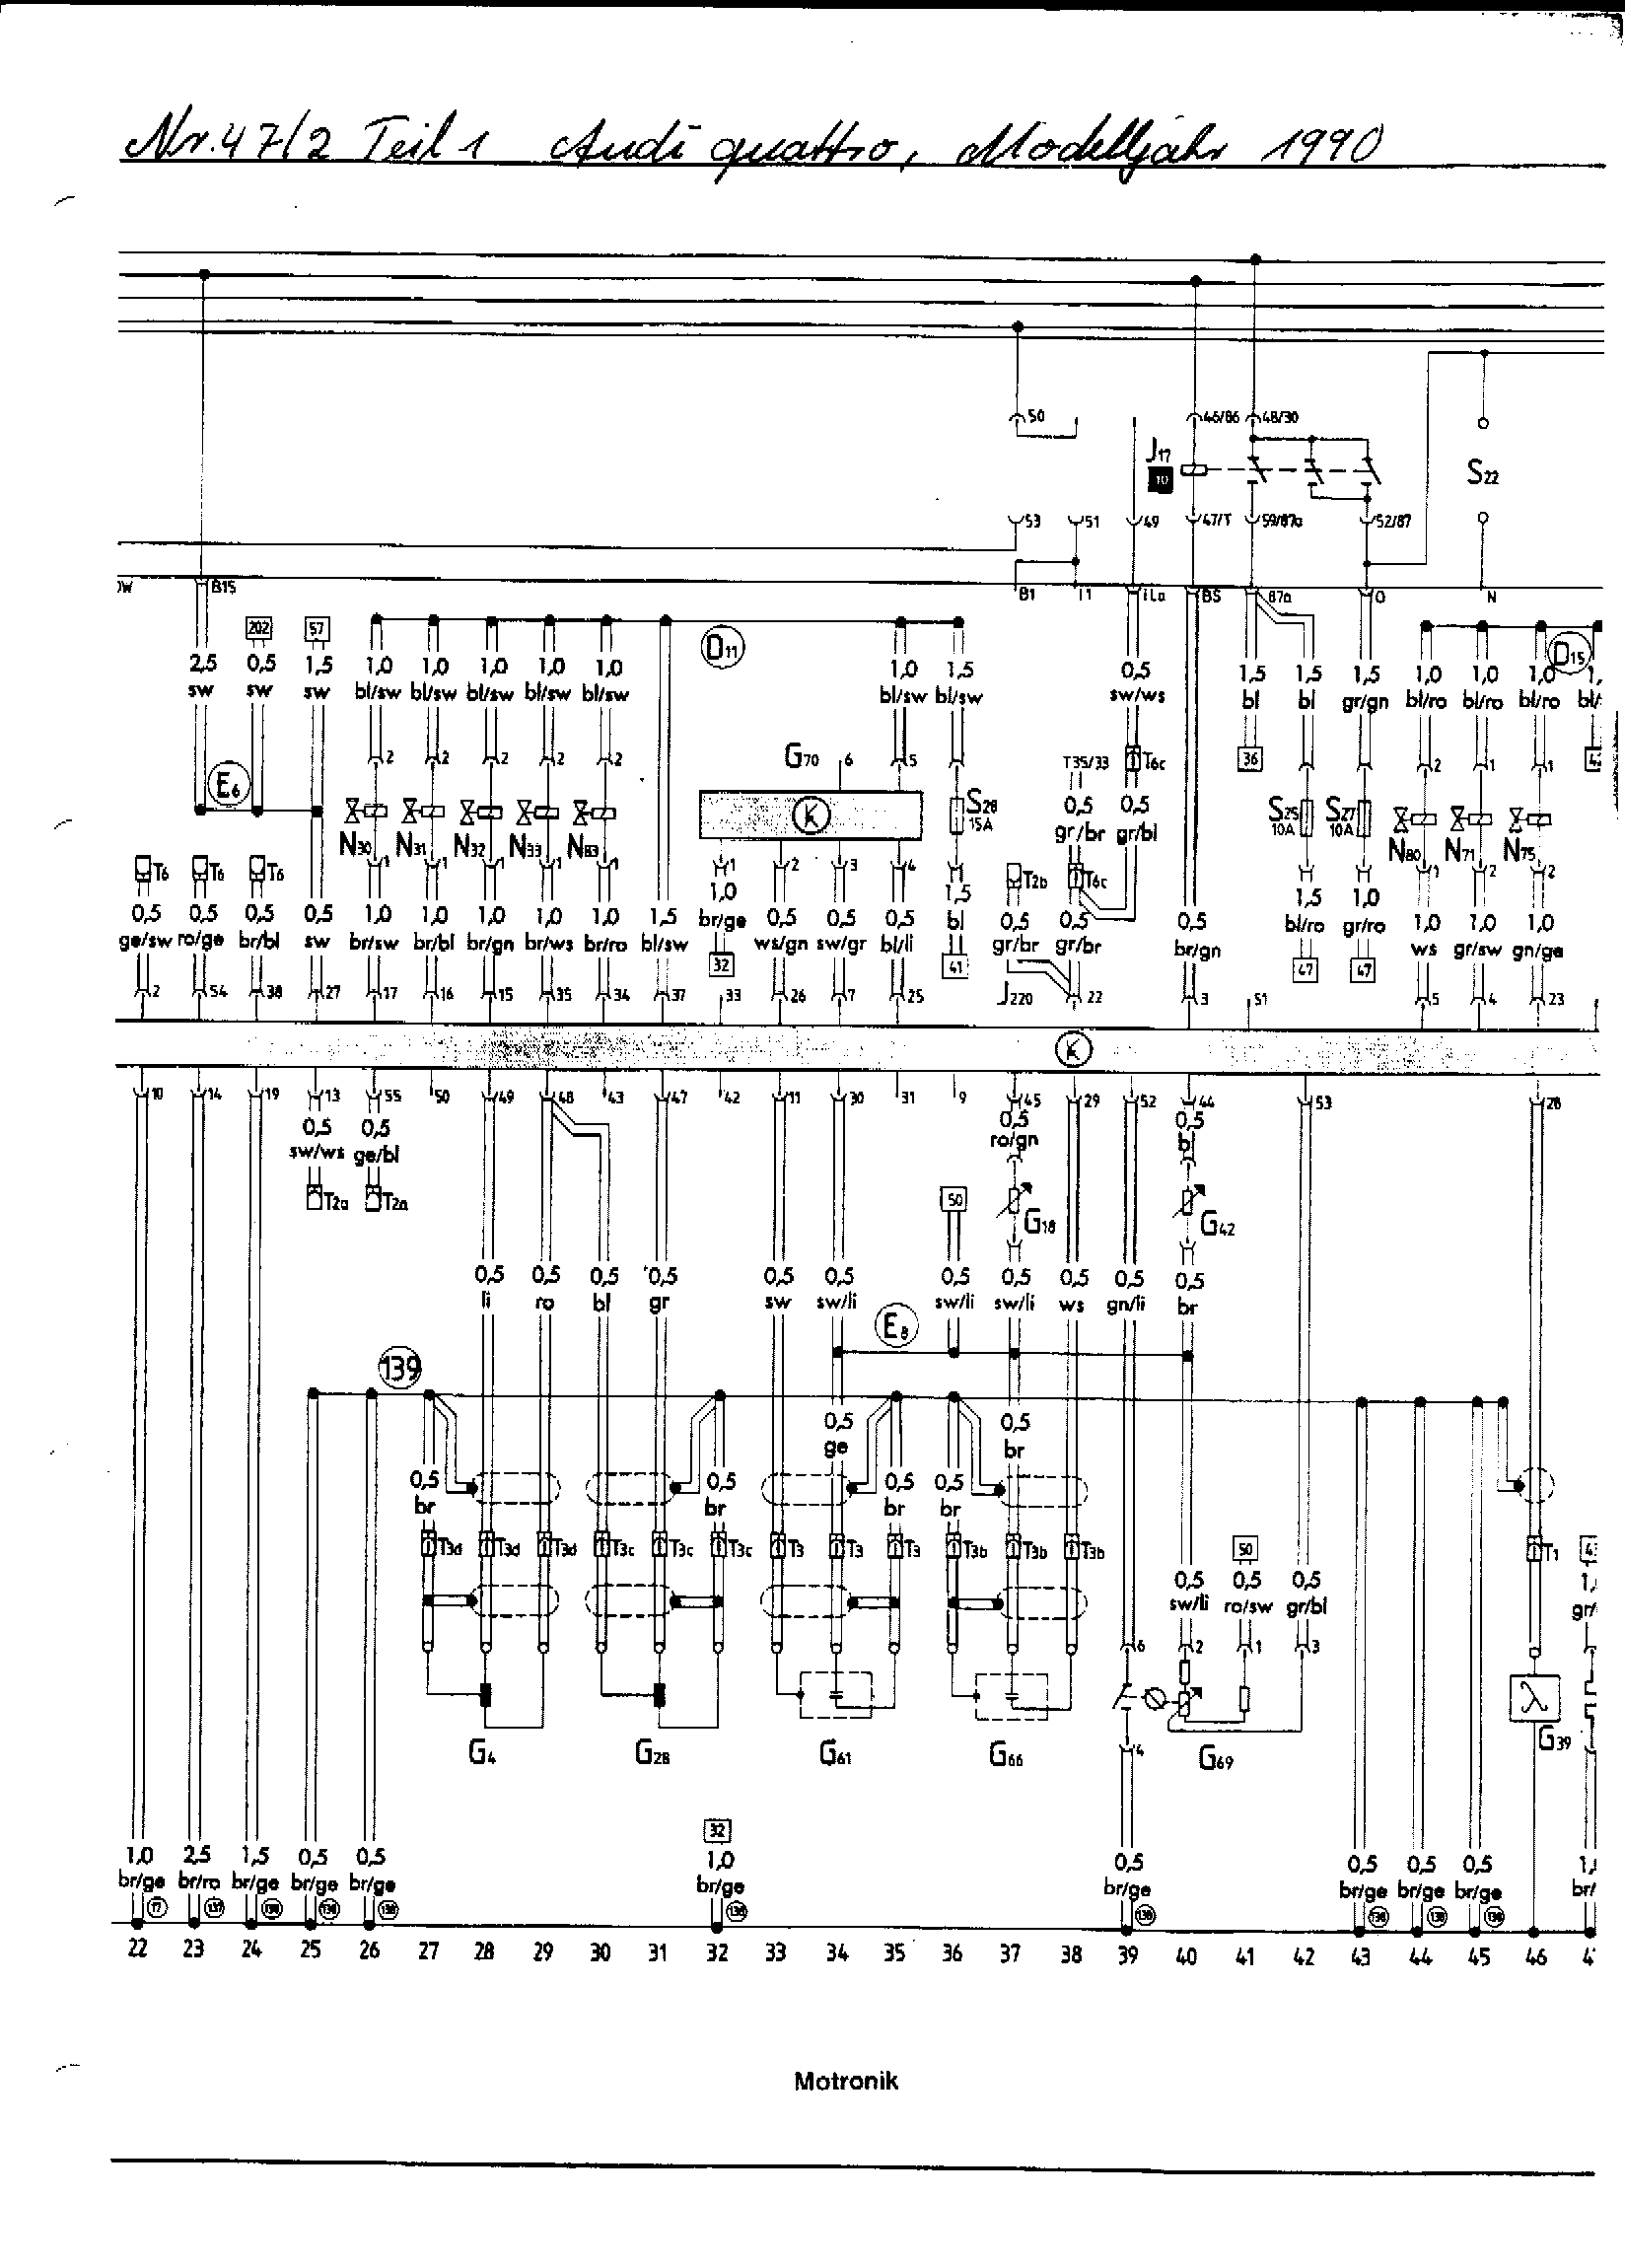 Electrical Component Lookup for the Audi ur-quattro 20V RR